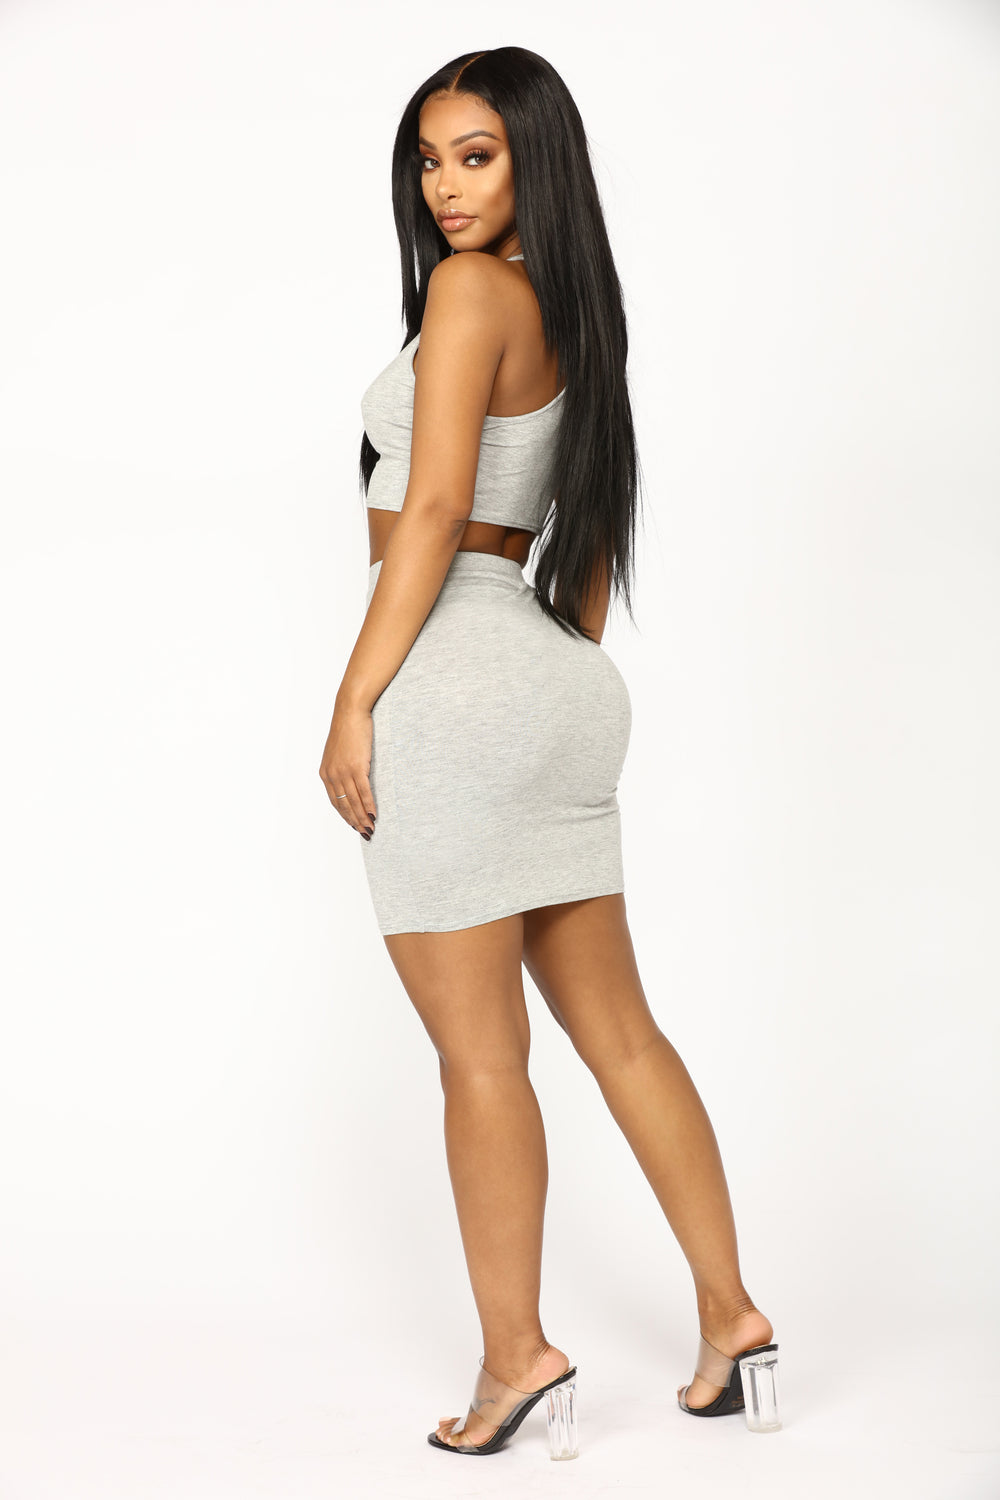 Heart Sigh Skirt Set - Heather Grey